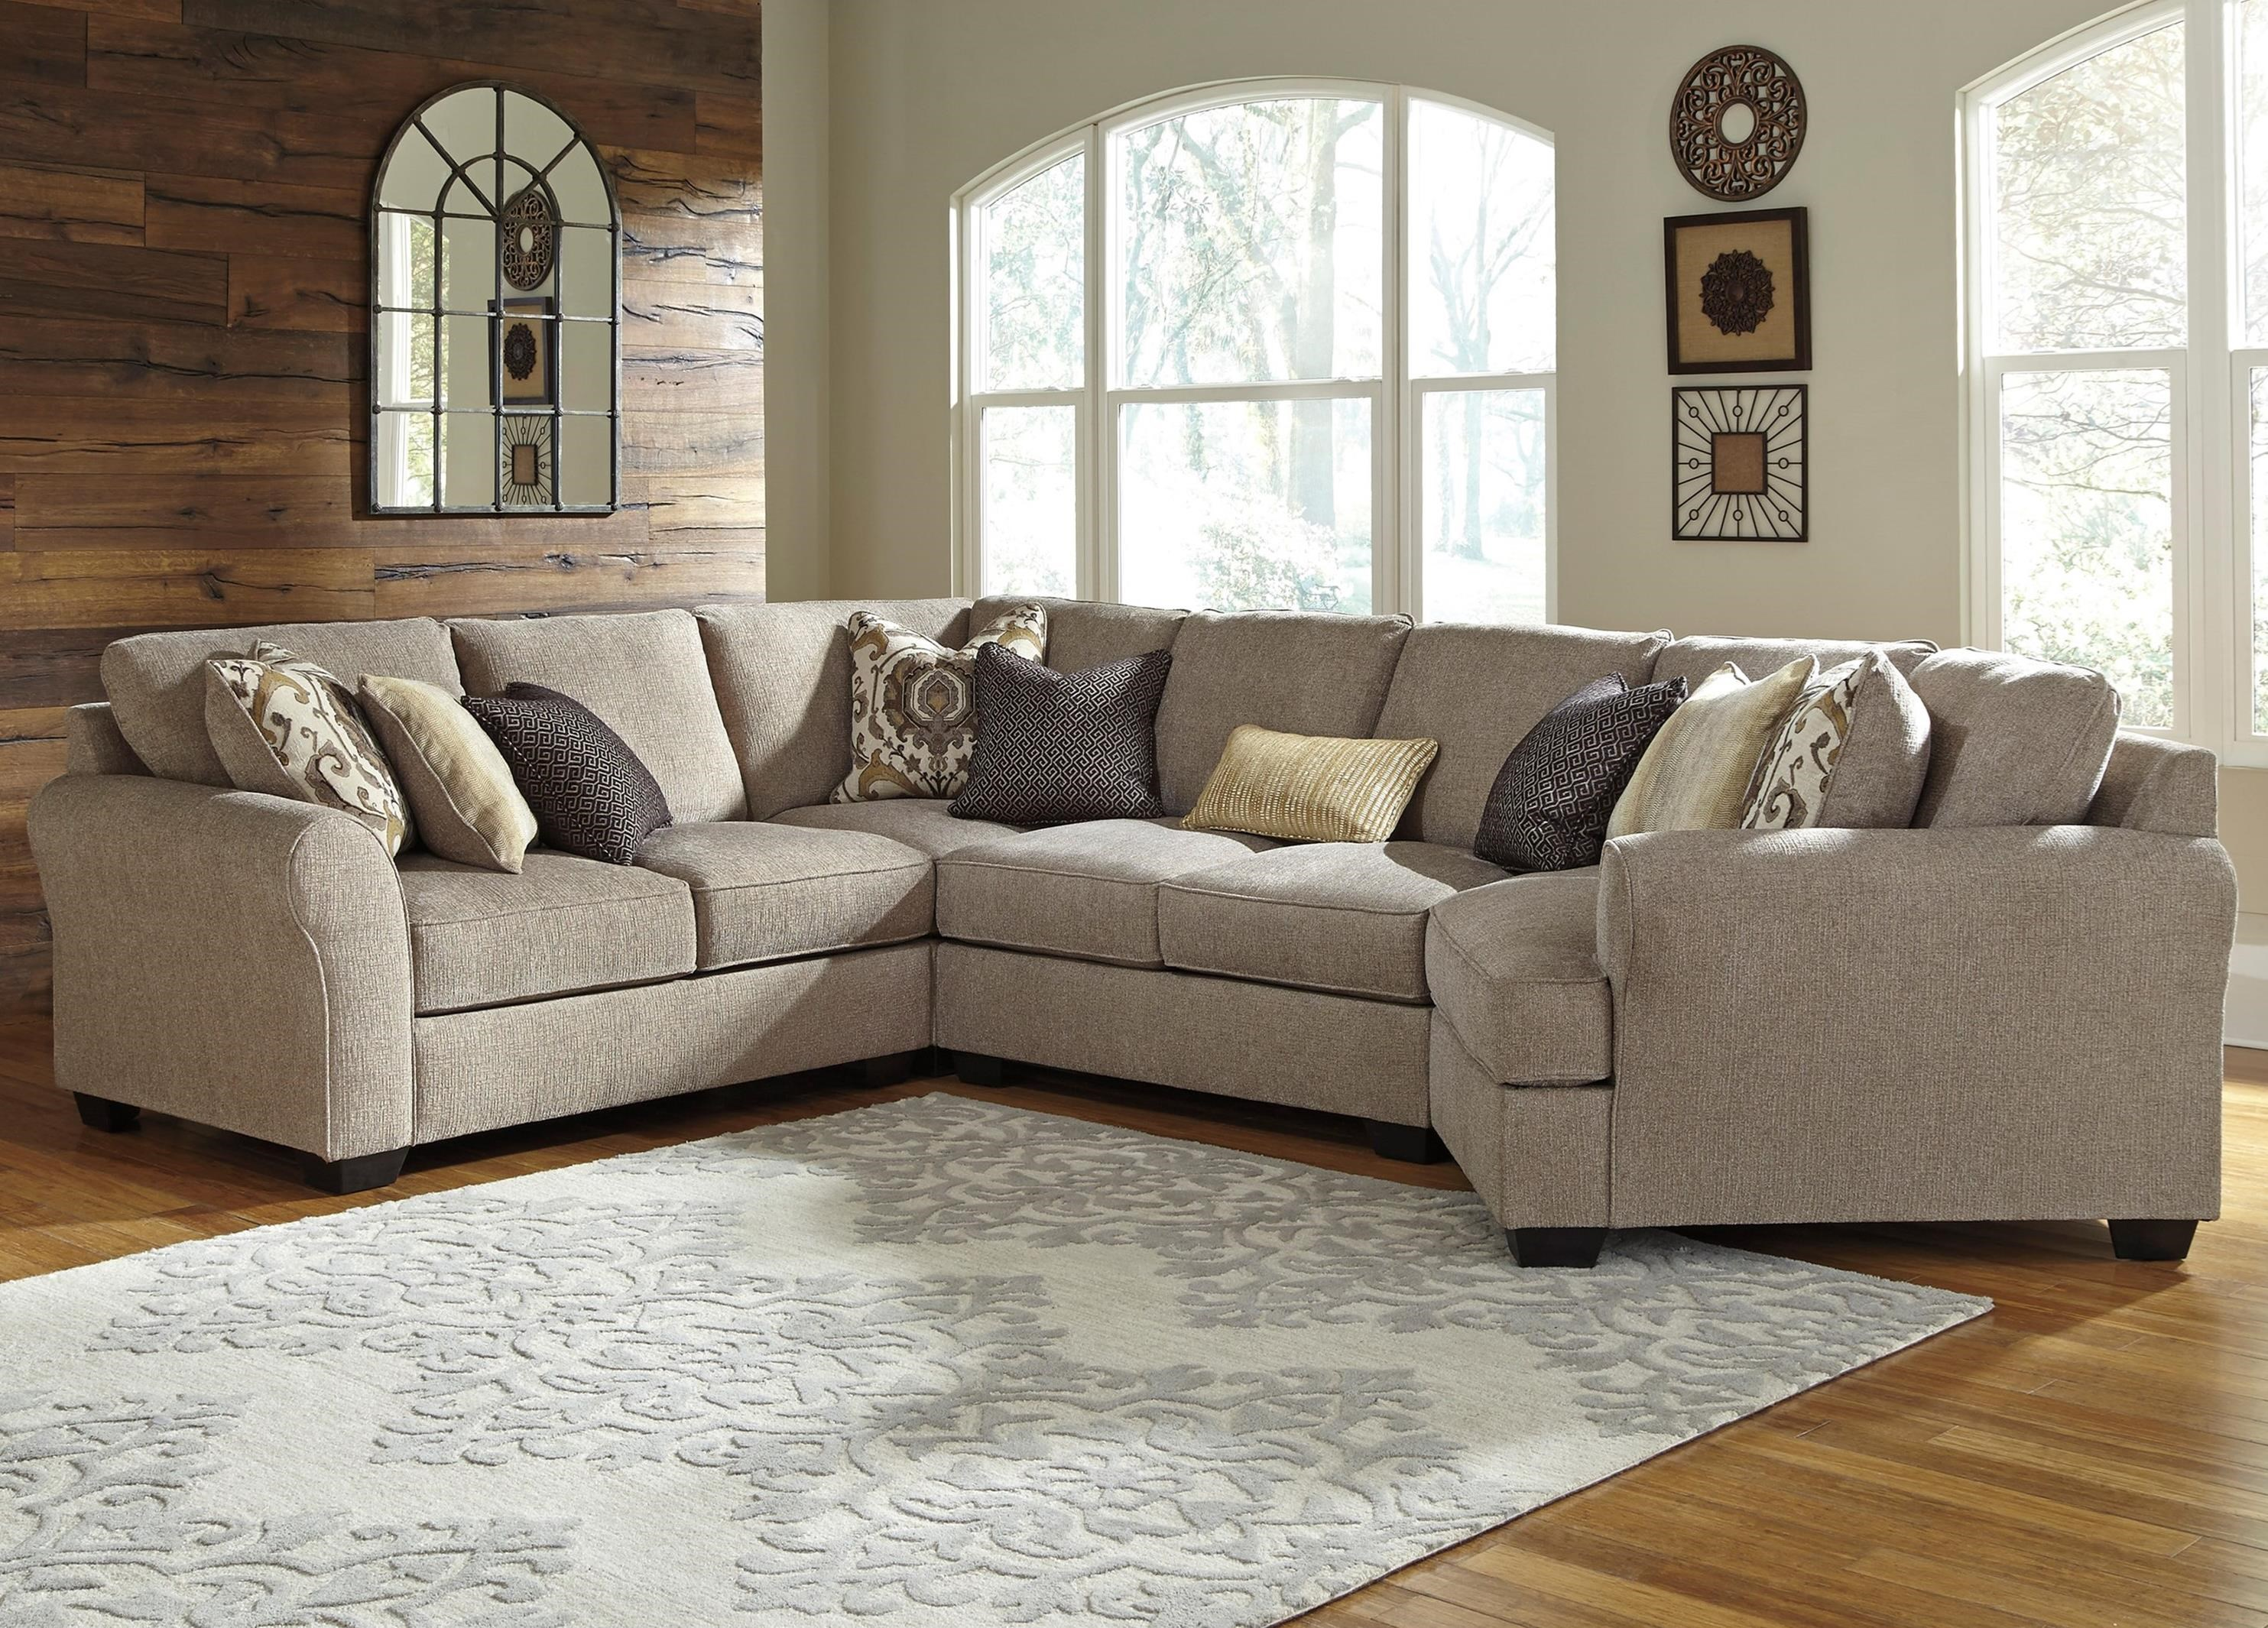 Benchcraft Pantomine 4-Piece Sectional with Right Cuddler - Item Number: 3910255+77+34+75